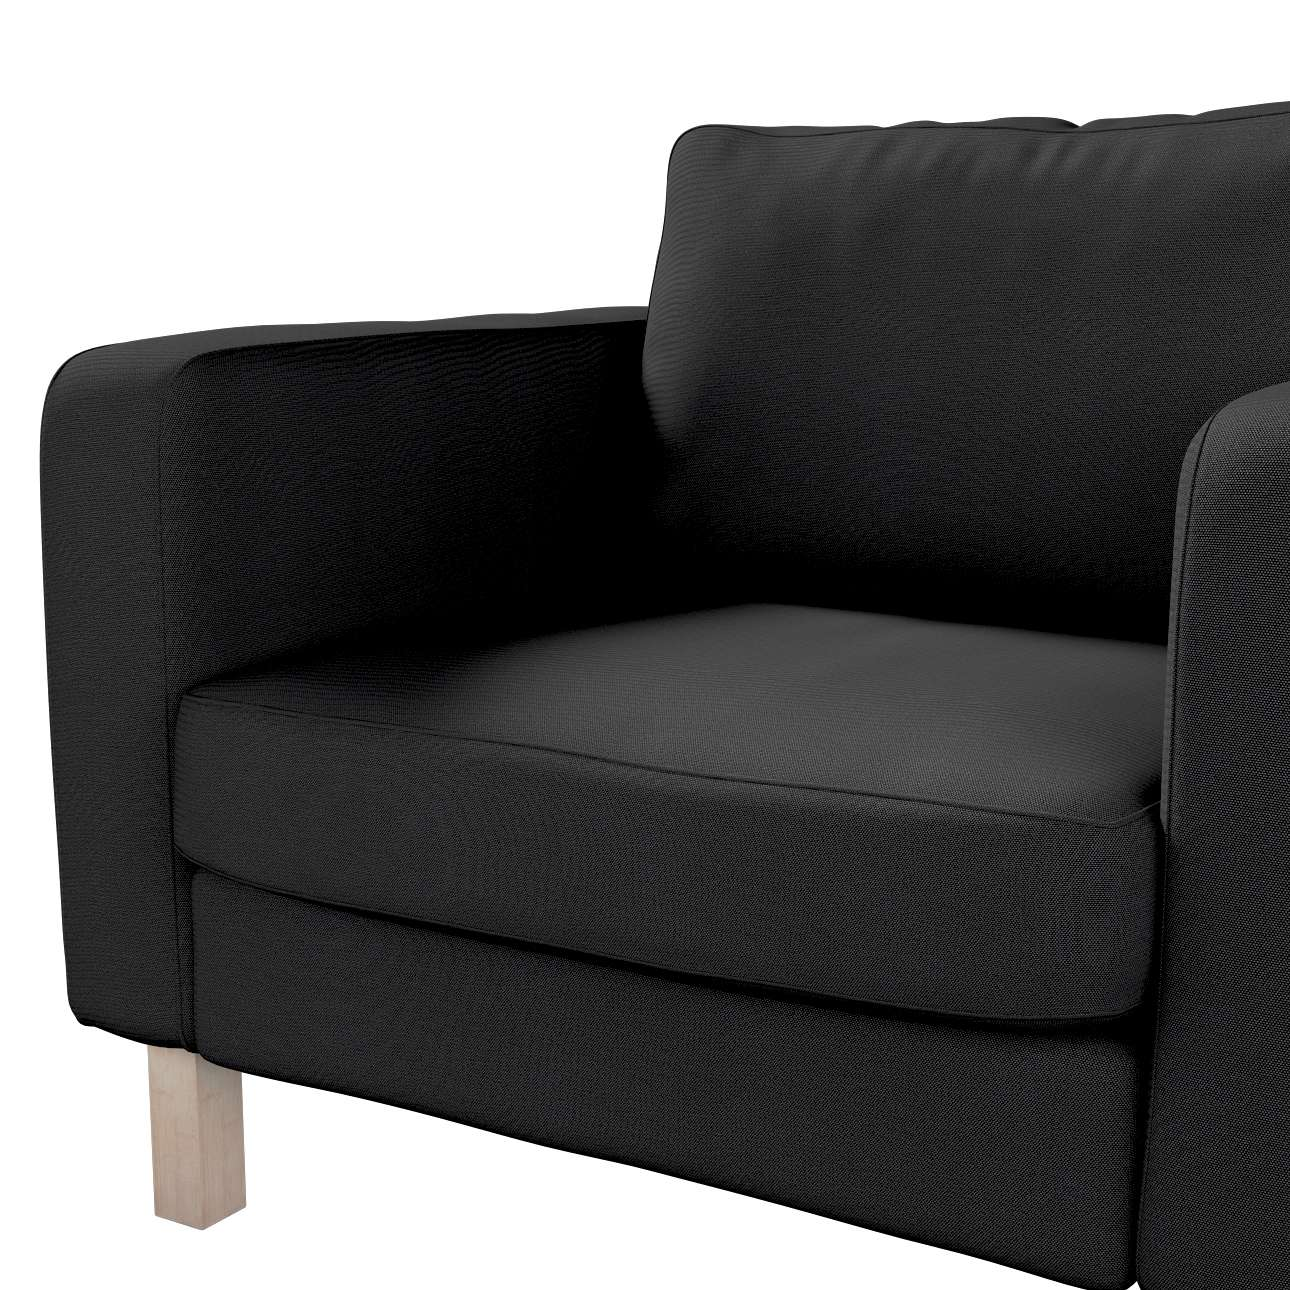 Karlstad armchair cover in collection Etna, fabric: 705-00